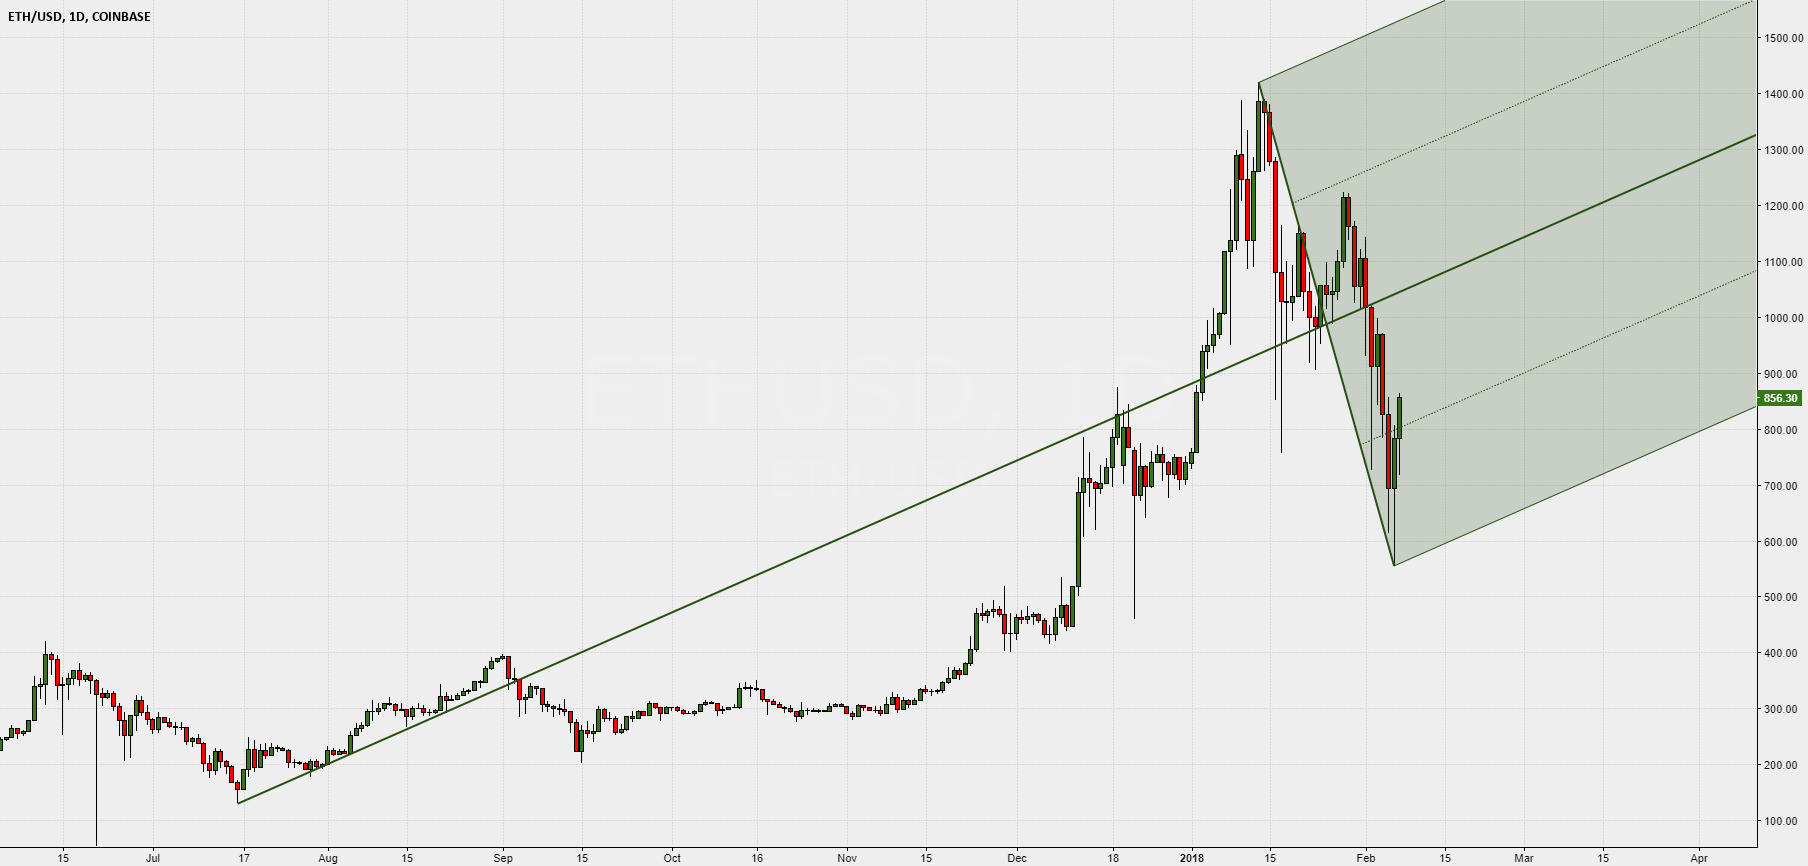 ETHUSD and Median Line